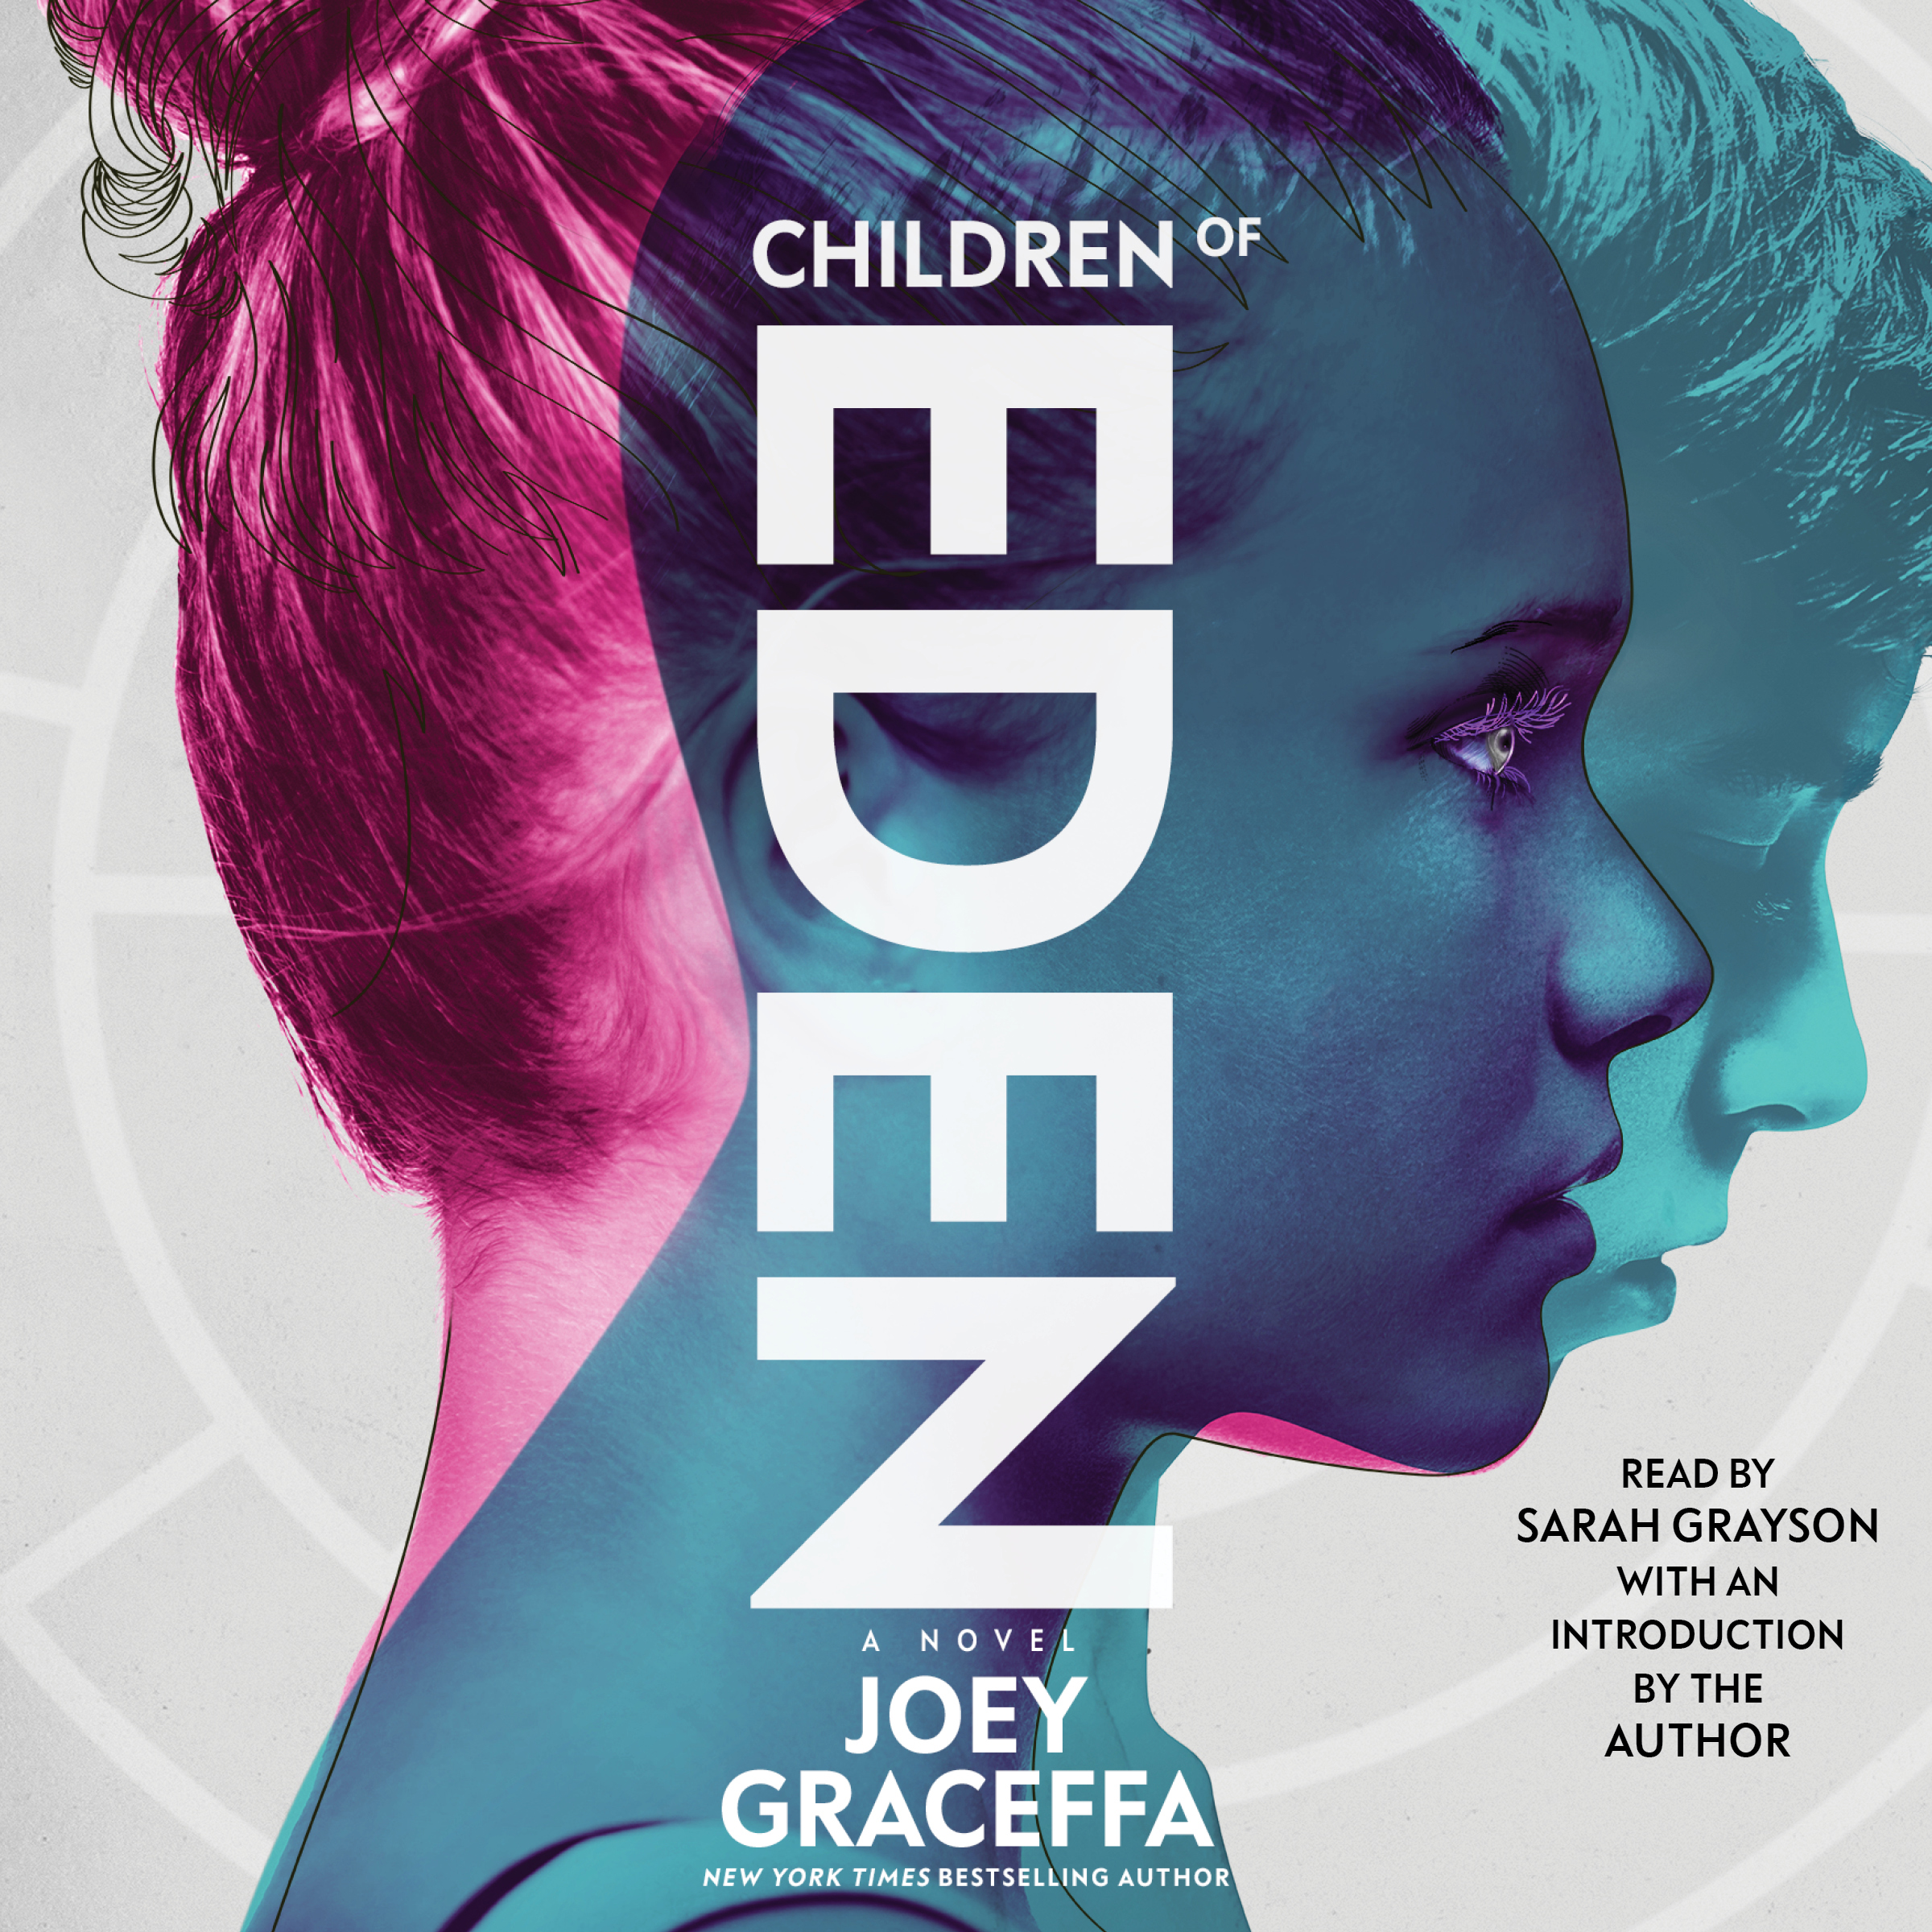 Children of eden 9781508223078 hr